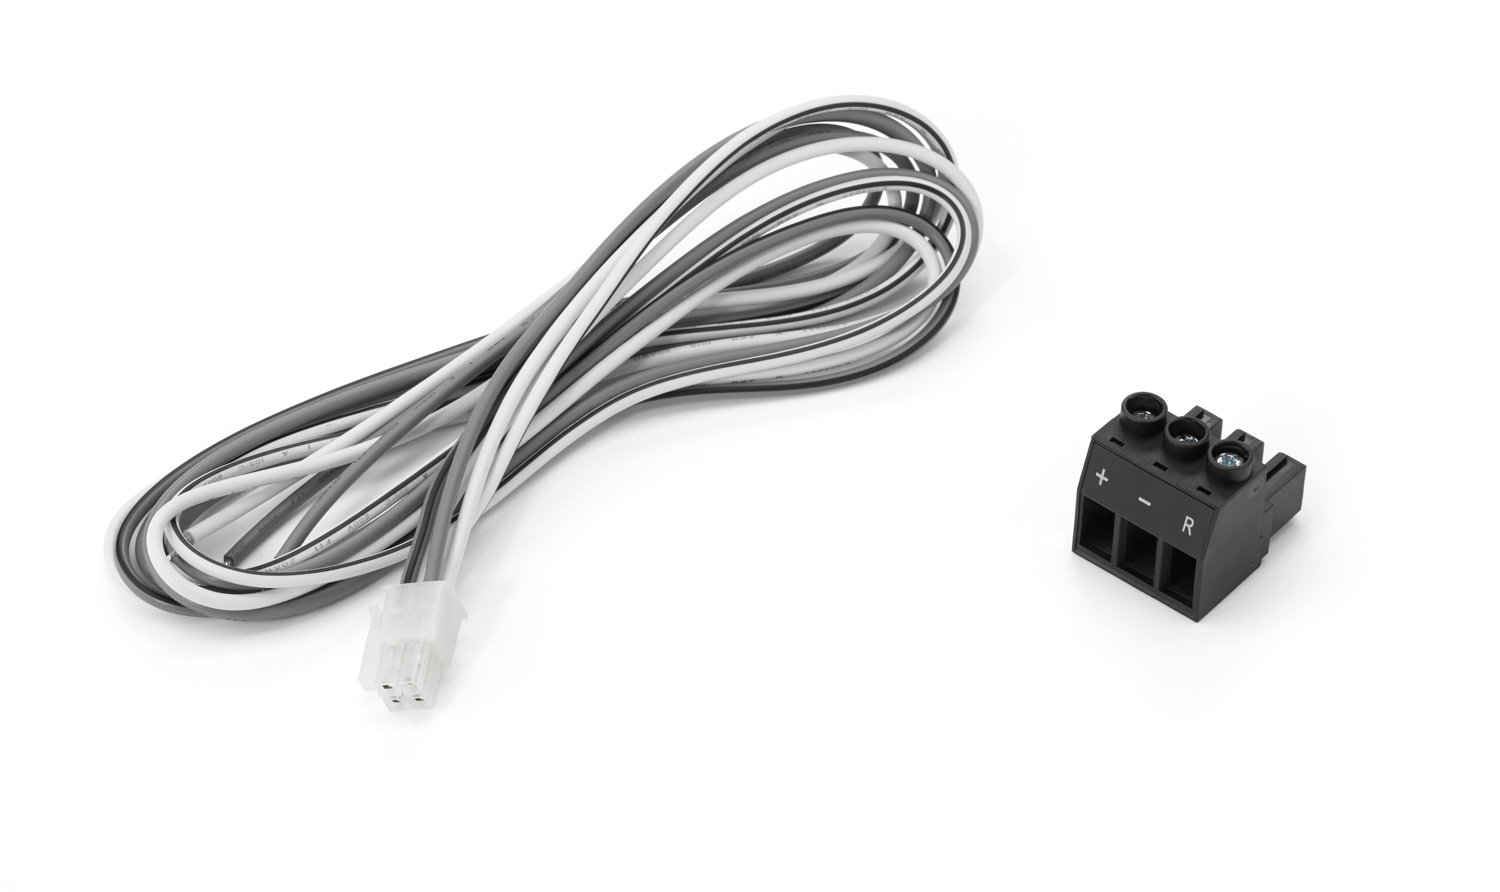 acp acs pp ca rp replacement speaker input wire harness and power plug for microsub and powerwedge  [ 1500 x 892 Pixel ]